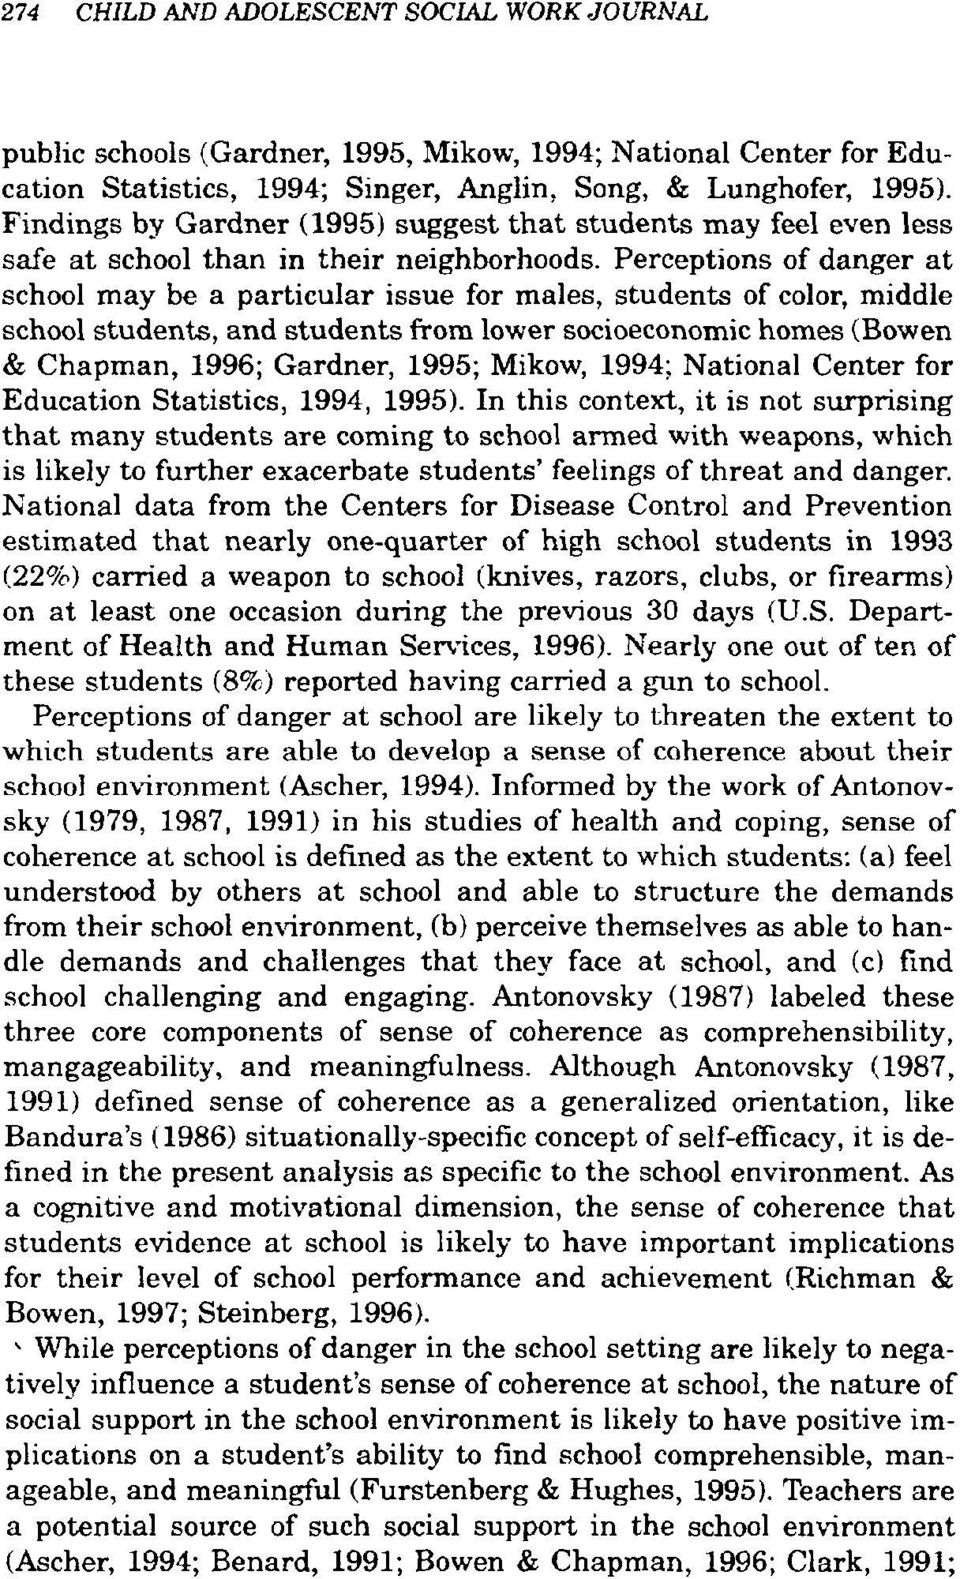 Perceptions of danger at school may be a particular issue for males, students of color, middle school students, and students from lower socioeconomic homes (Bowen & Chapman, 1996; Gardner, 1995;